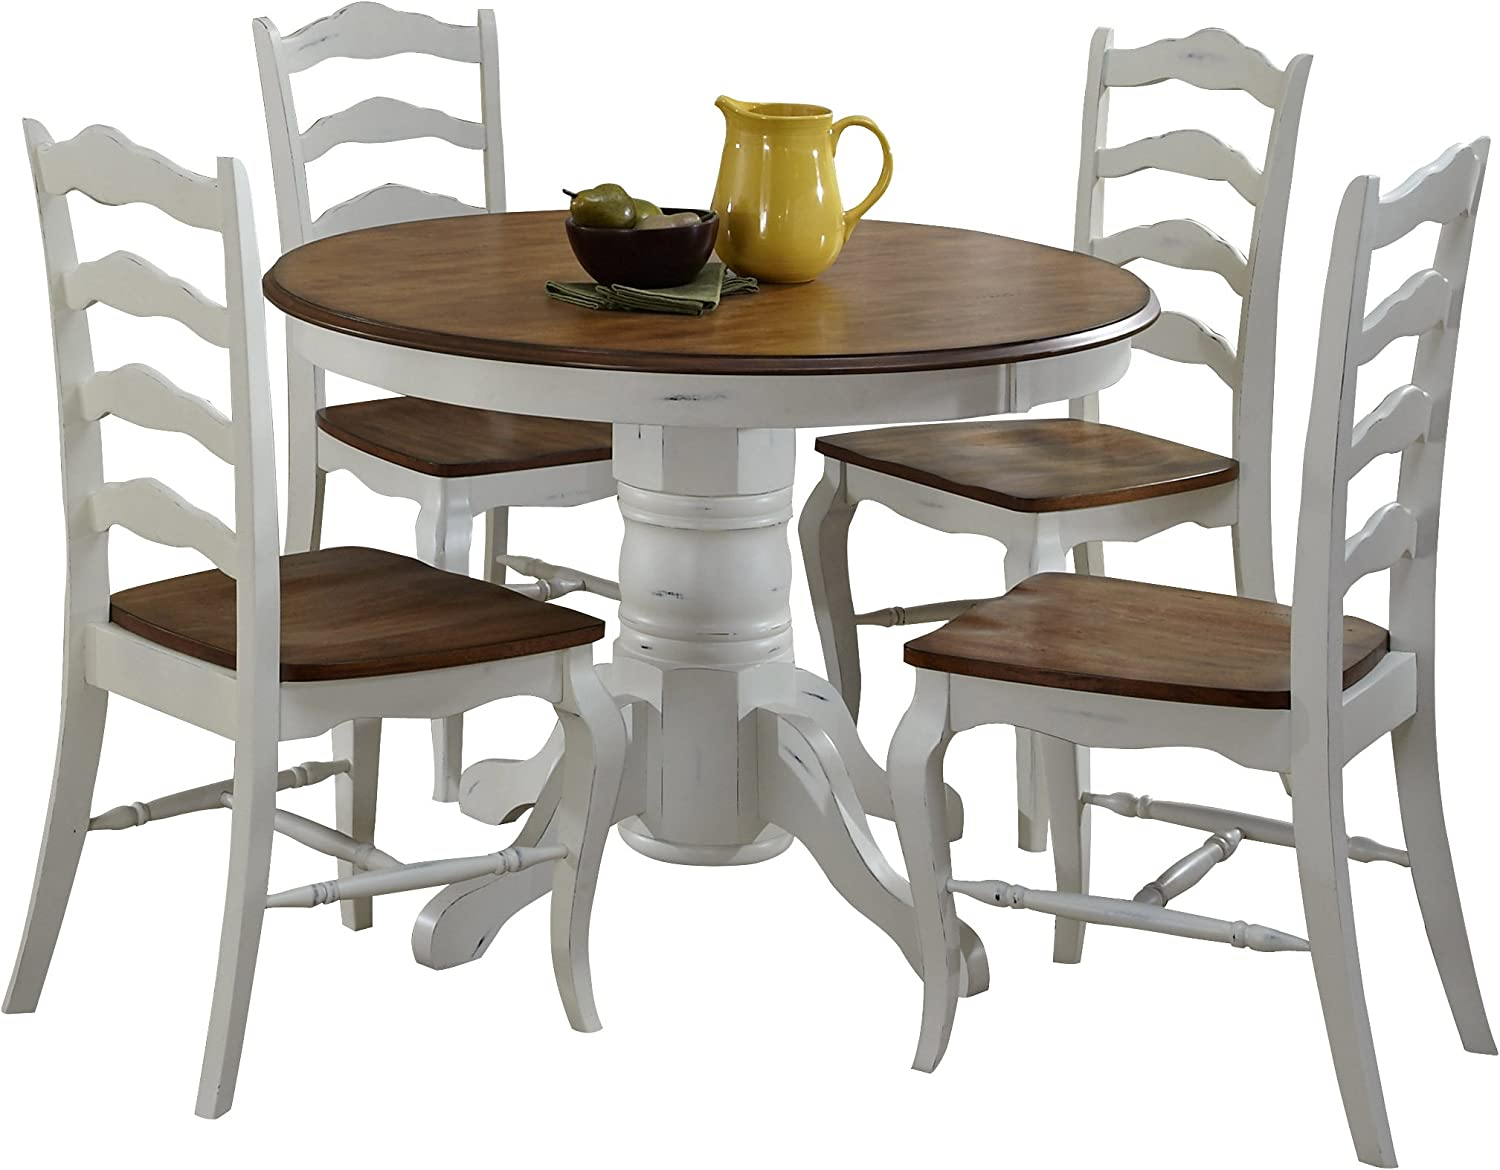 Amazon Com French Countryside Oak White 42 Round Pedestal Dining Table With 4 Chairs By Home Styles Tables